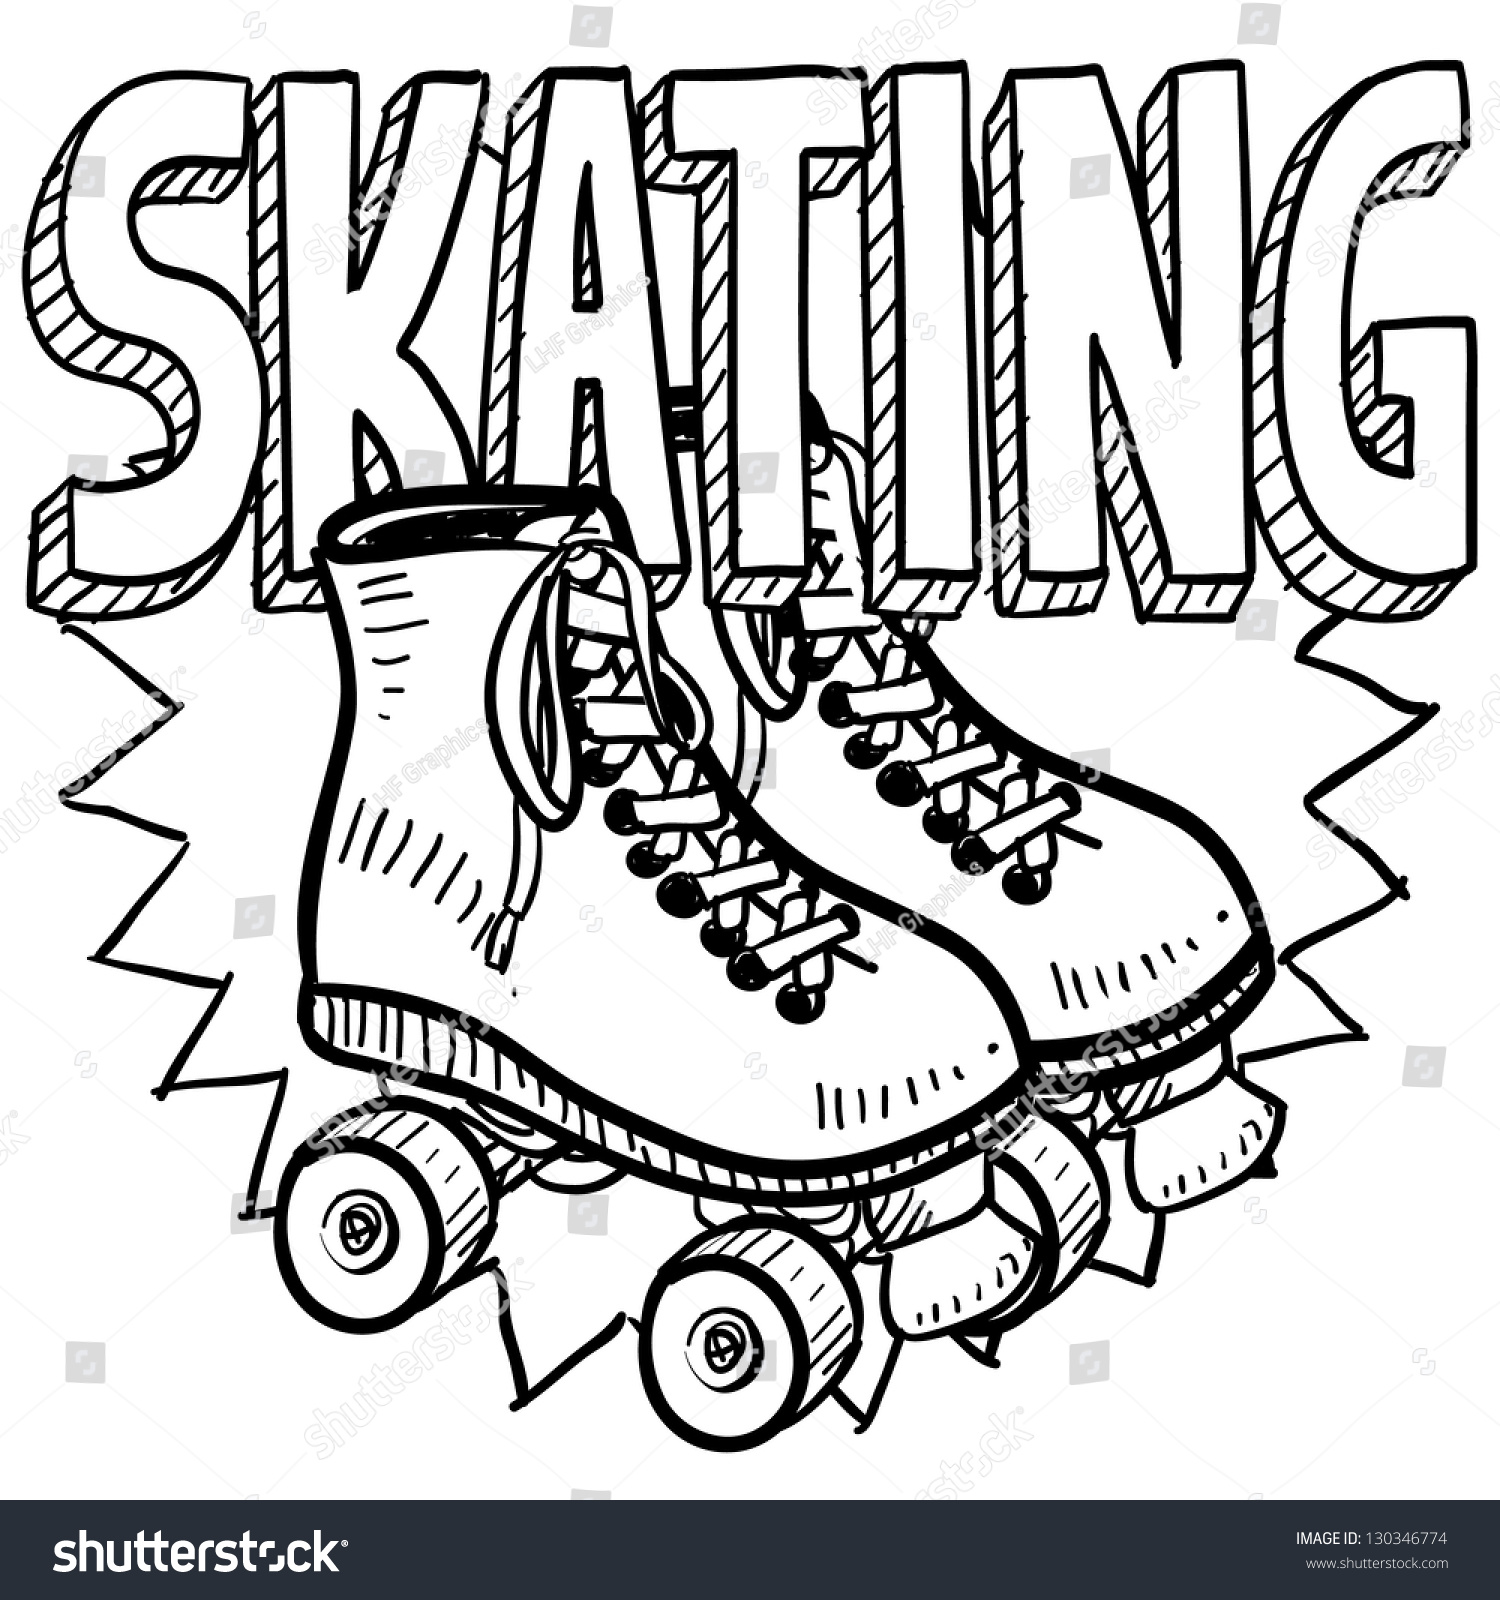 Roller skates book - Doodle Style Roller Skating Illustration In Vector Format Includes Text And Skates